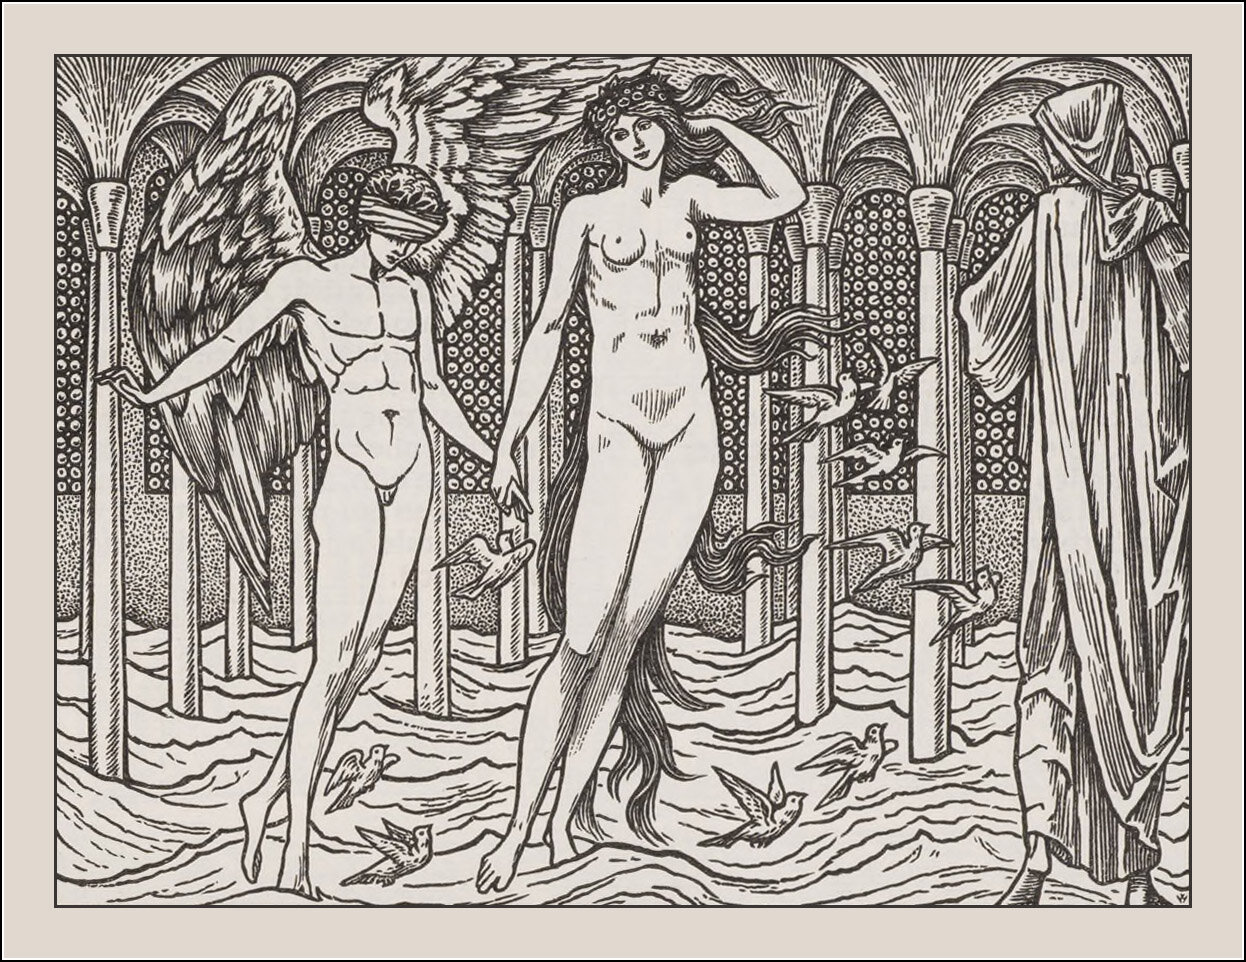 Edward Coley Burne-Jones, The works of Geoffrey Chaucer